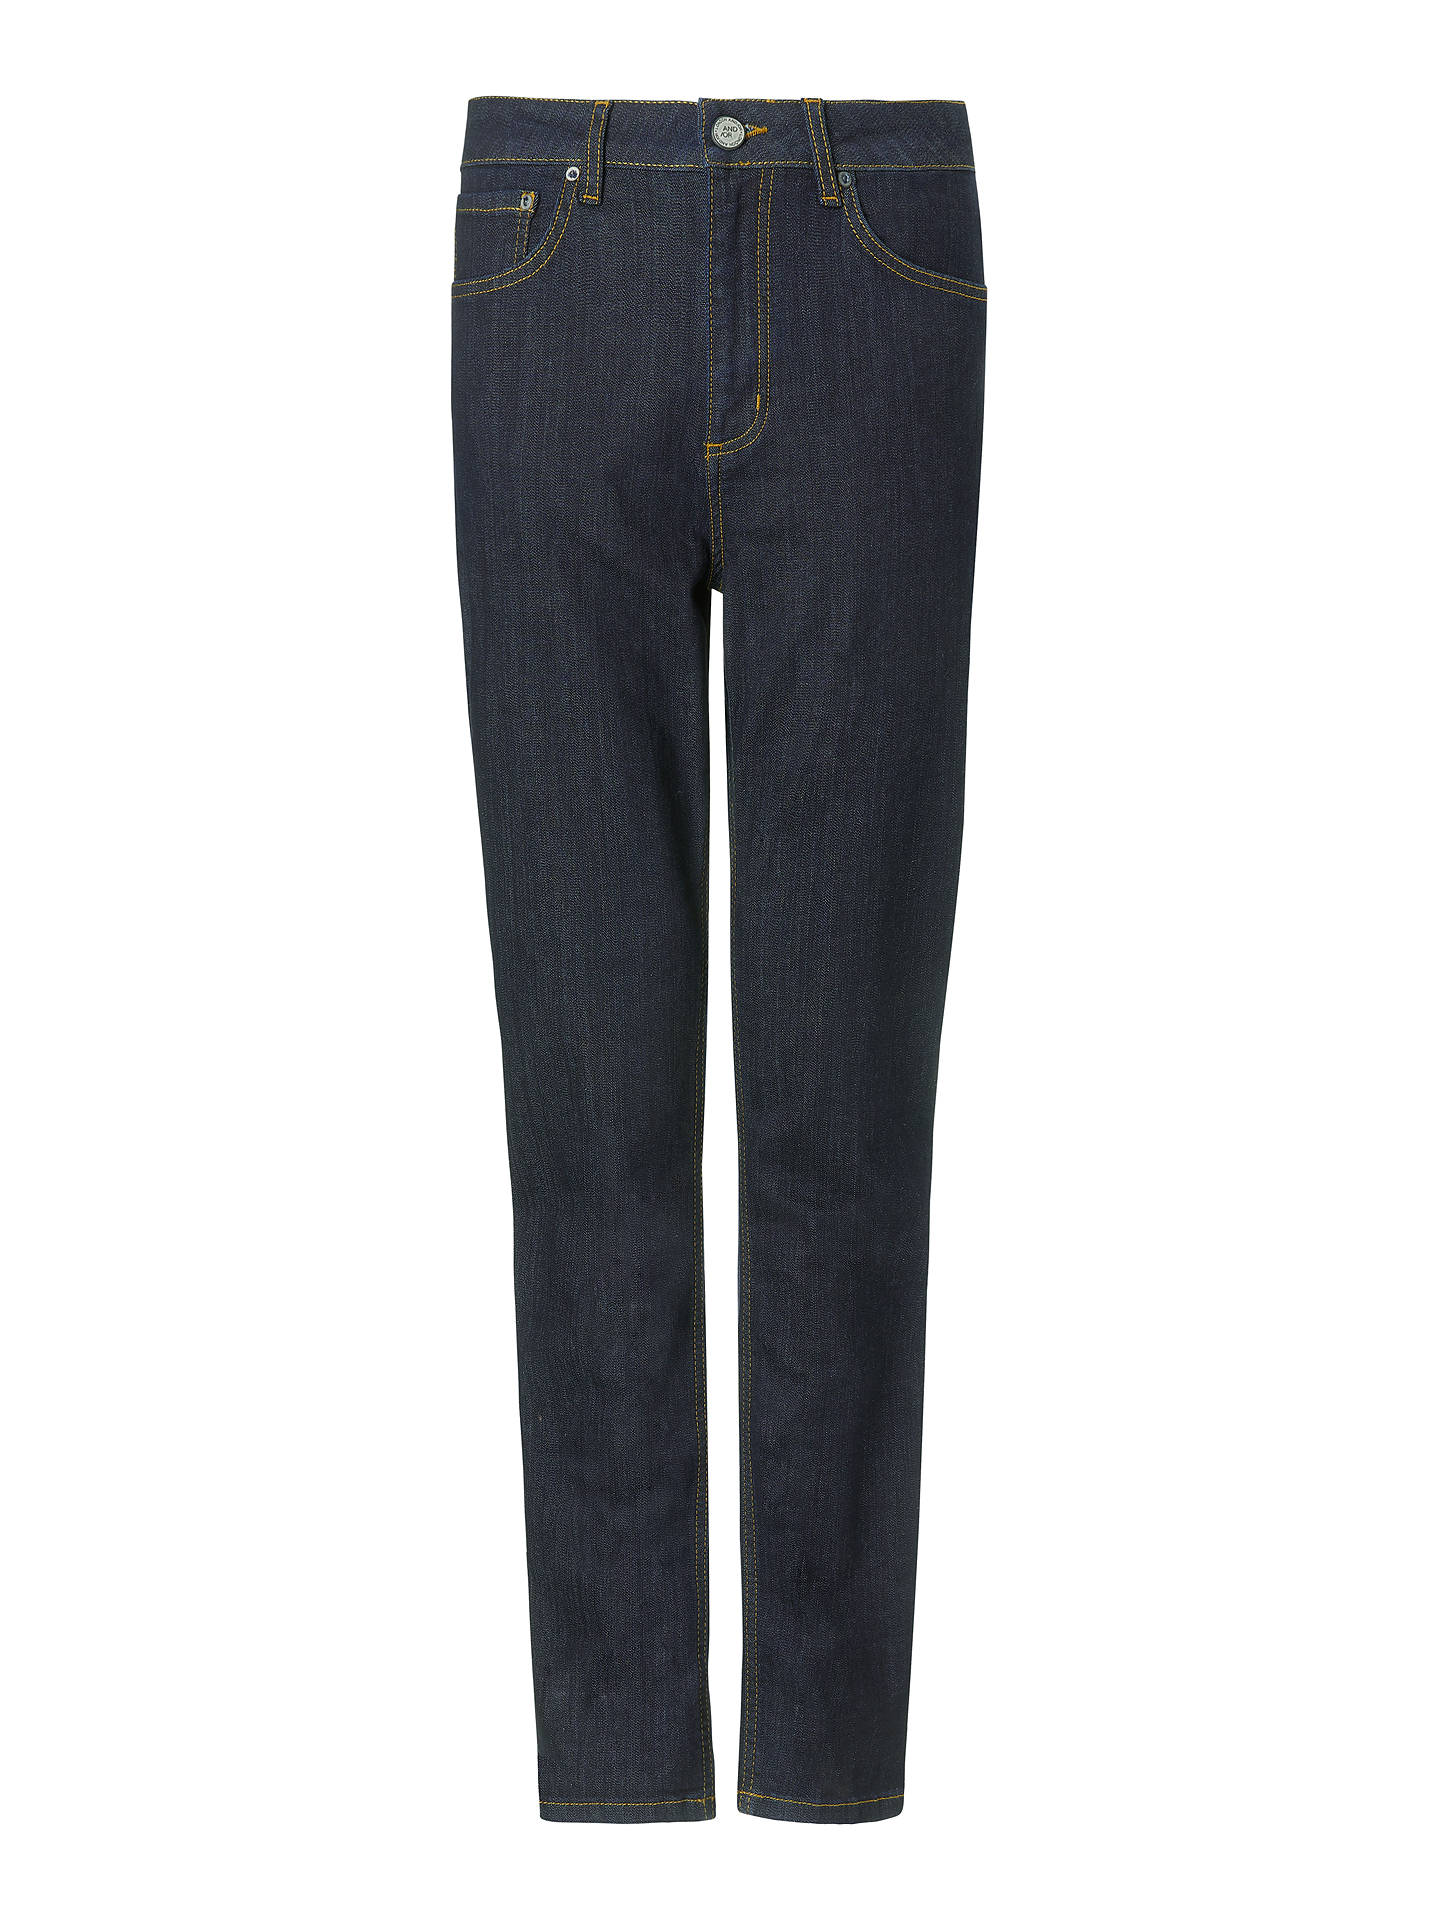 Buy AND/OR High Rise Straight Leg Jeans, Blue Rinse Wash, 30 Online at johnlewis.com